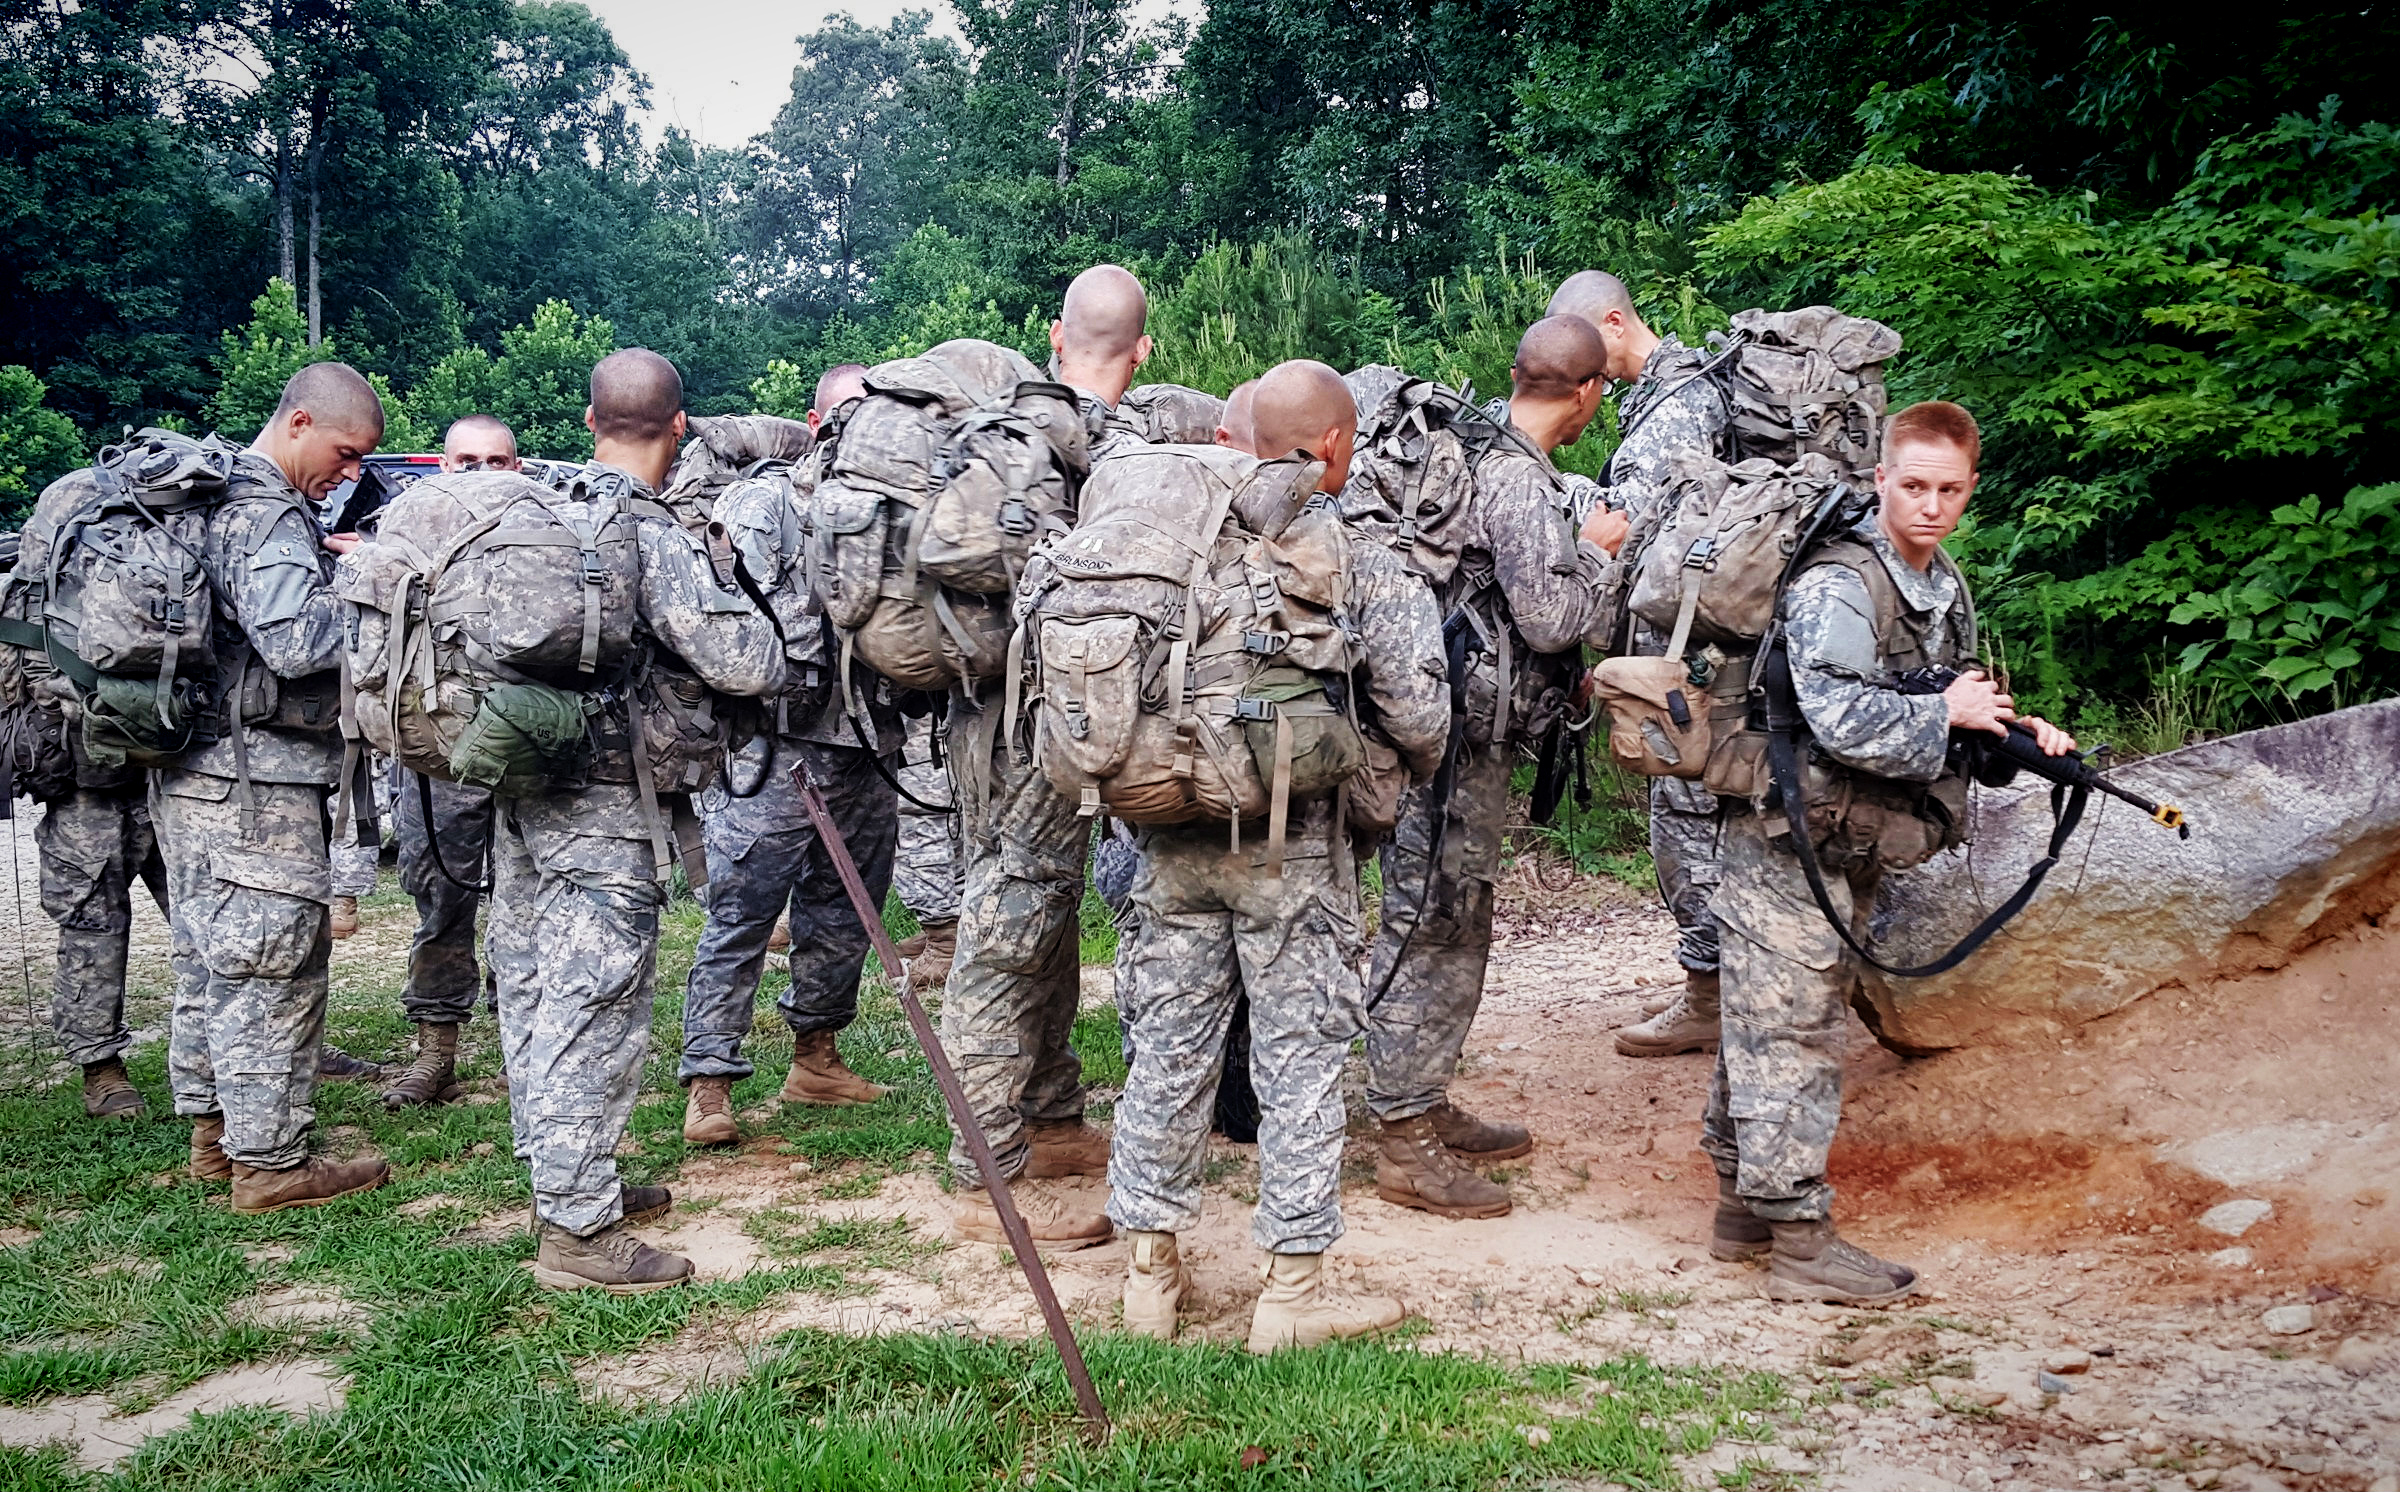 Ranger students, including one of the first women ever to take the Ranger School course, wait to ascend Mount Yonah in northern Georgias  on Tuesday, July 14, 2015 as part of the school's Mountain Phase.